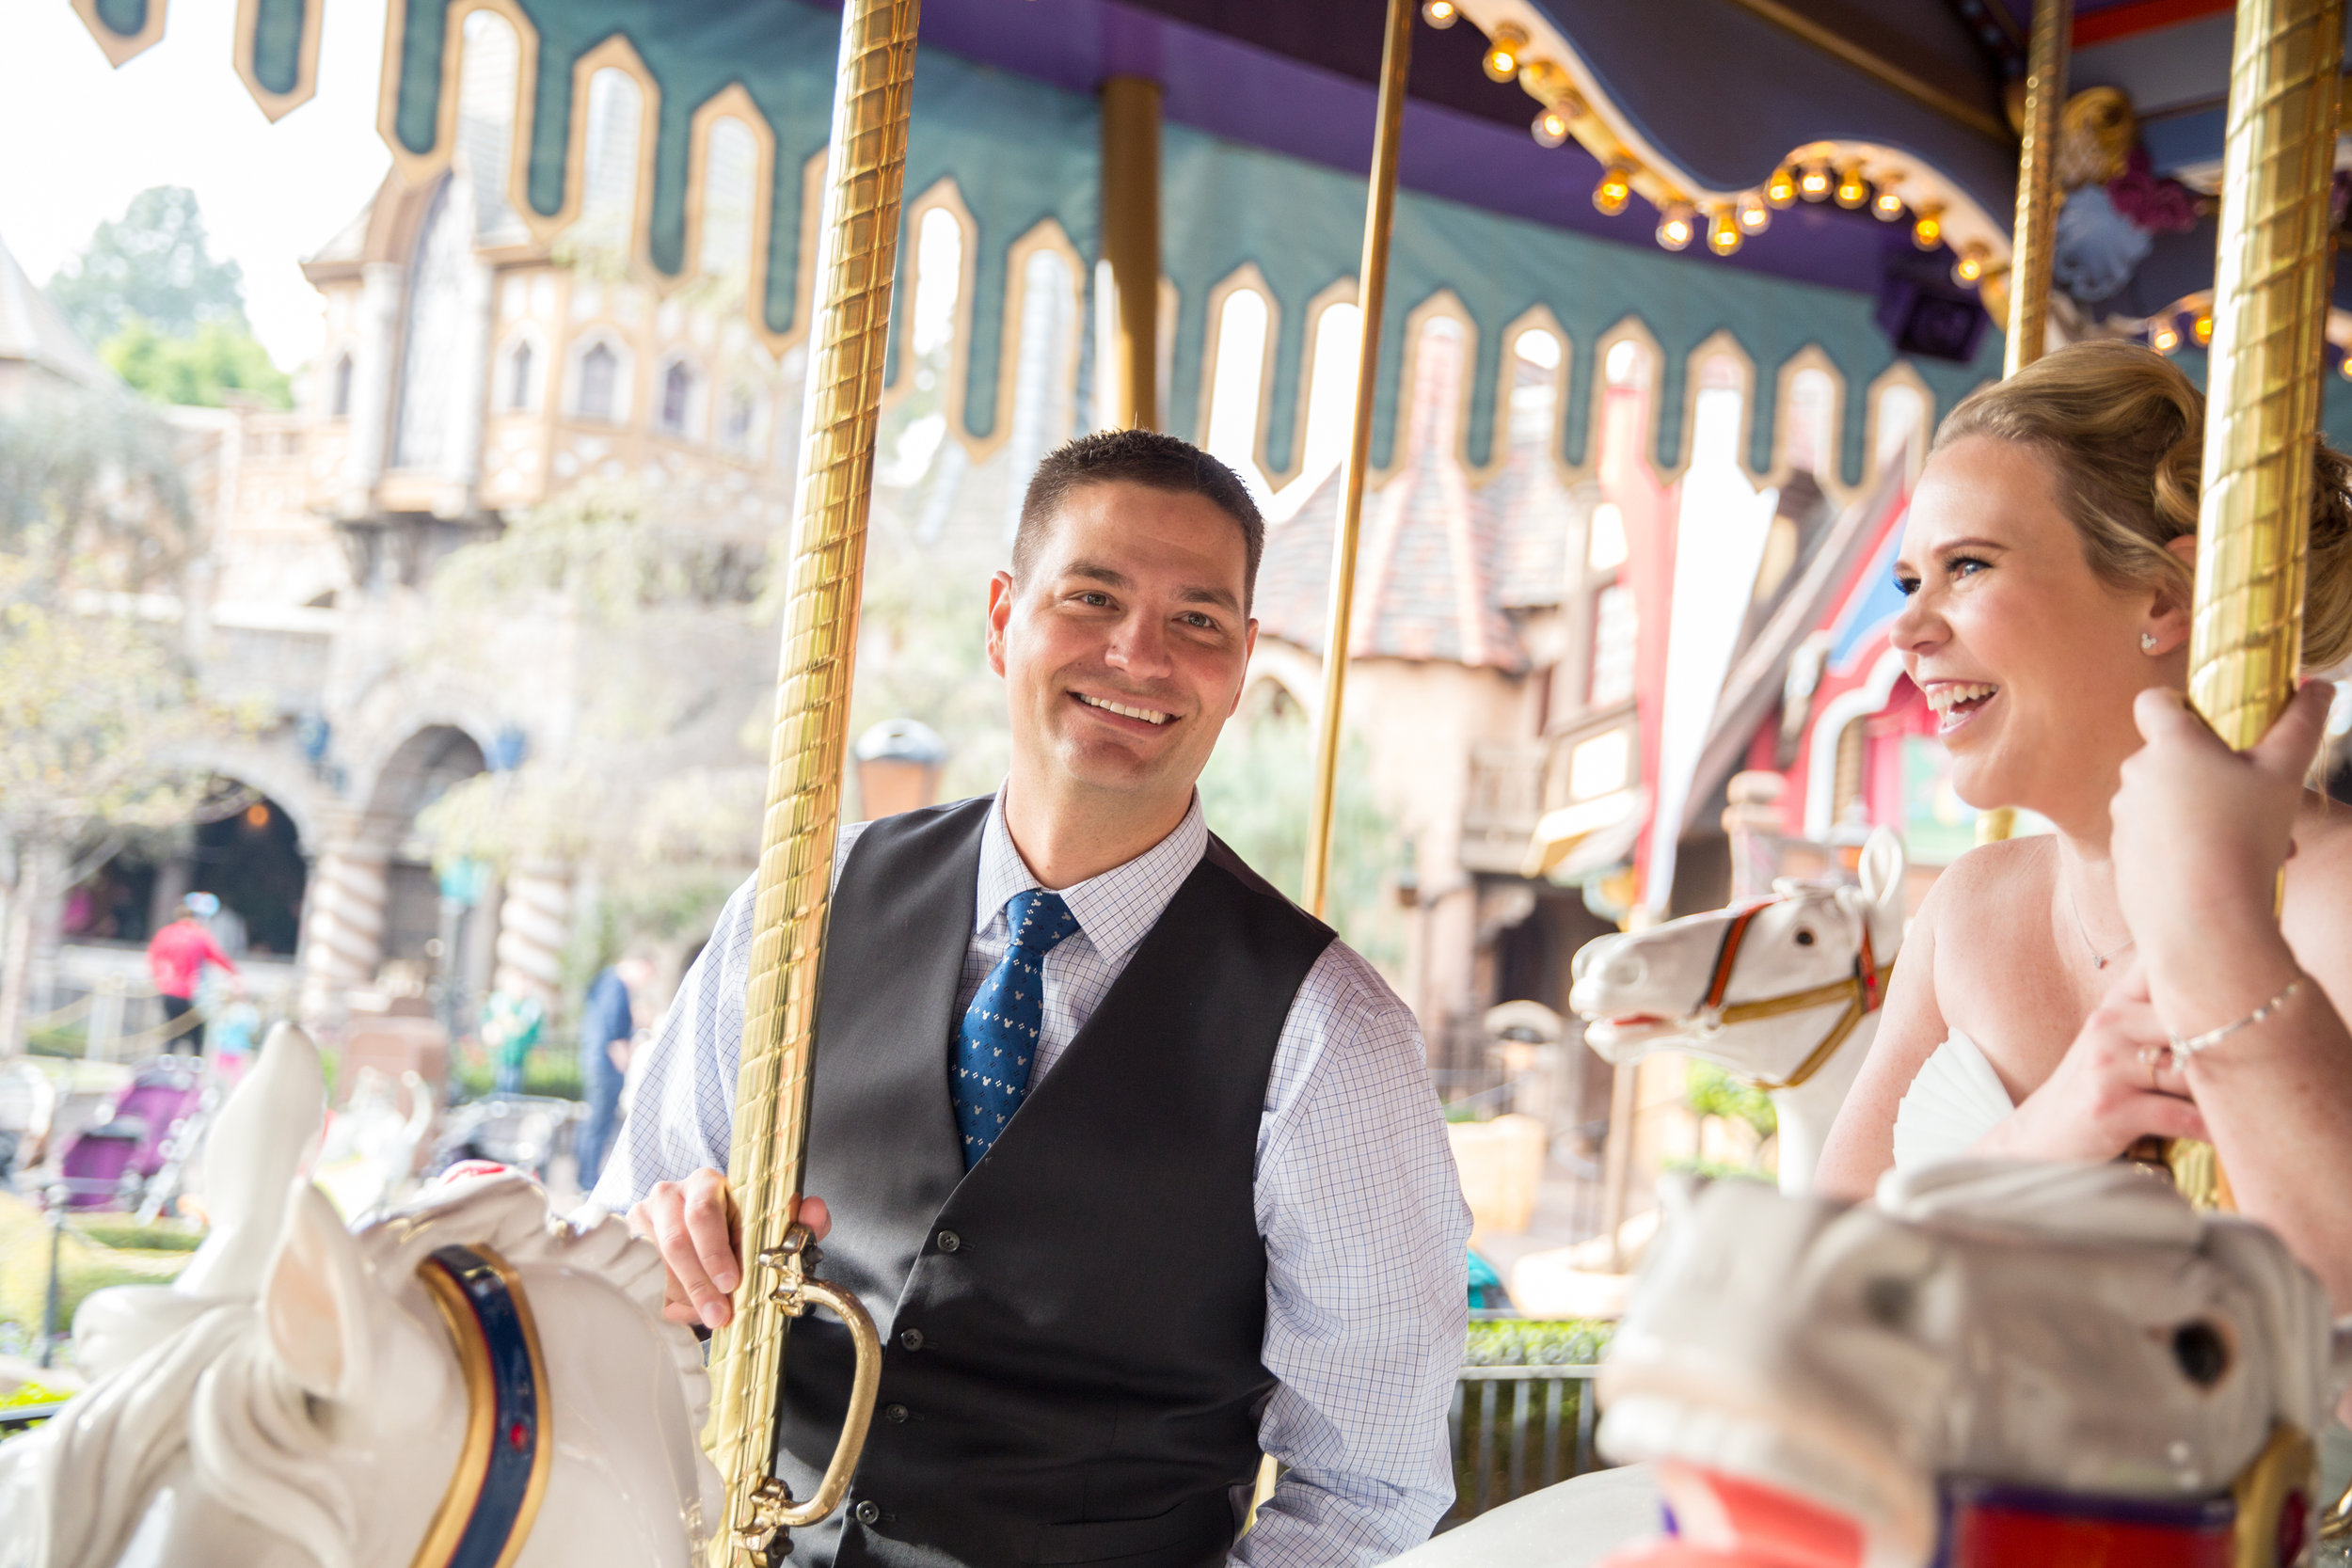 Riding a carousel horse in formal wear is harder than it looks!